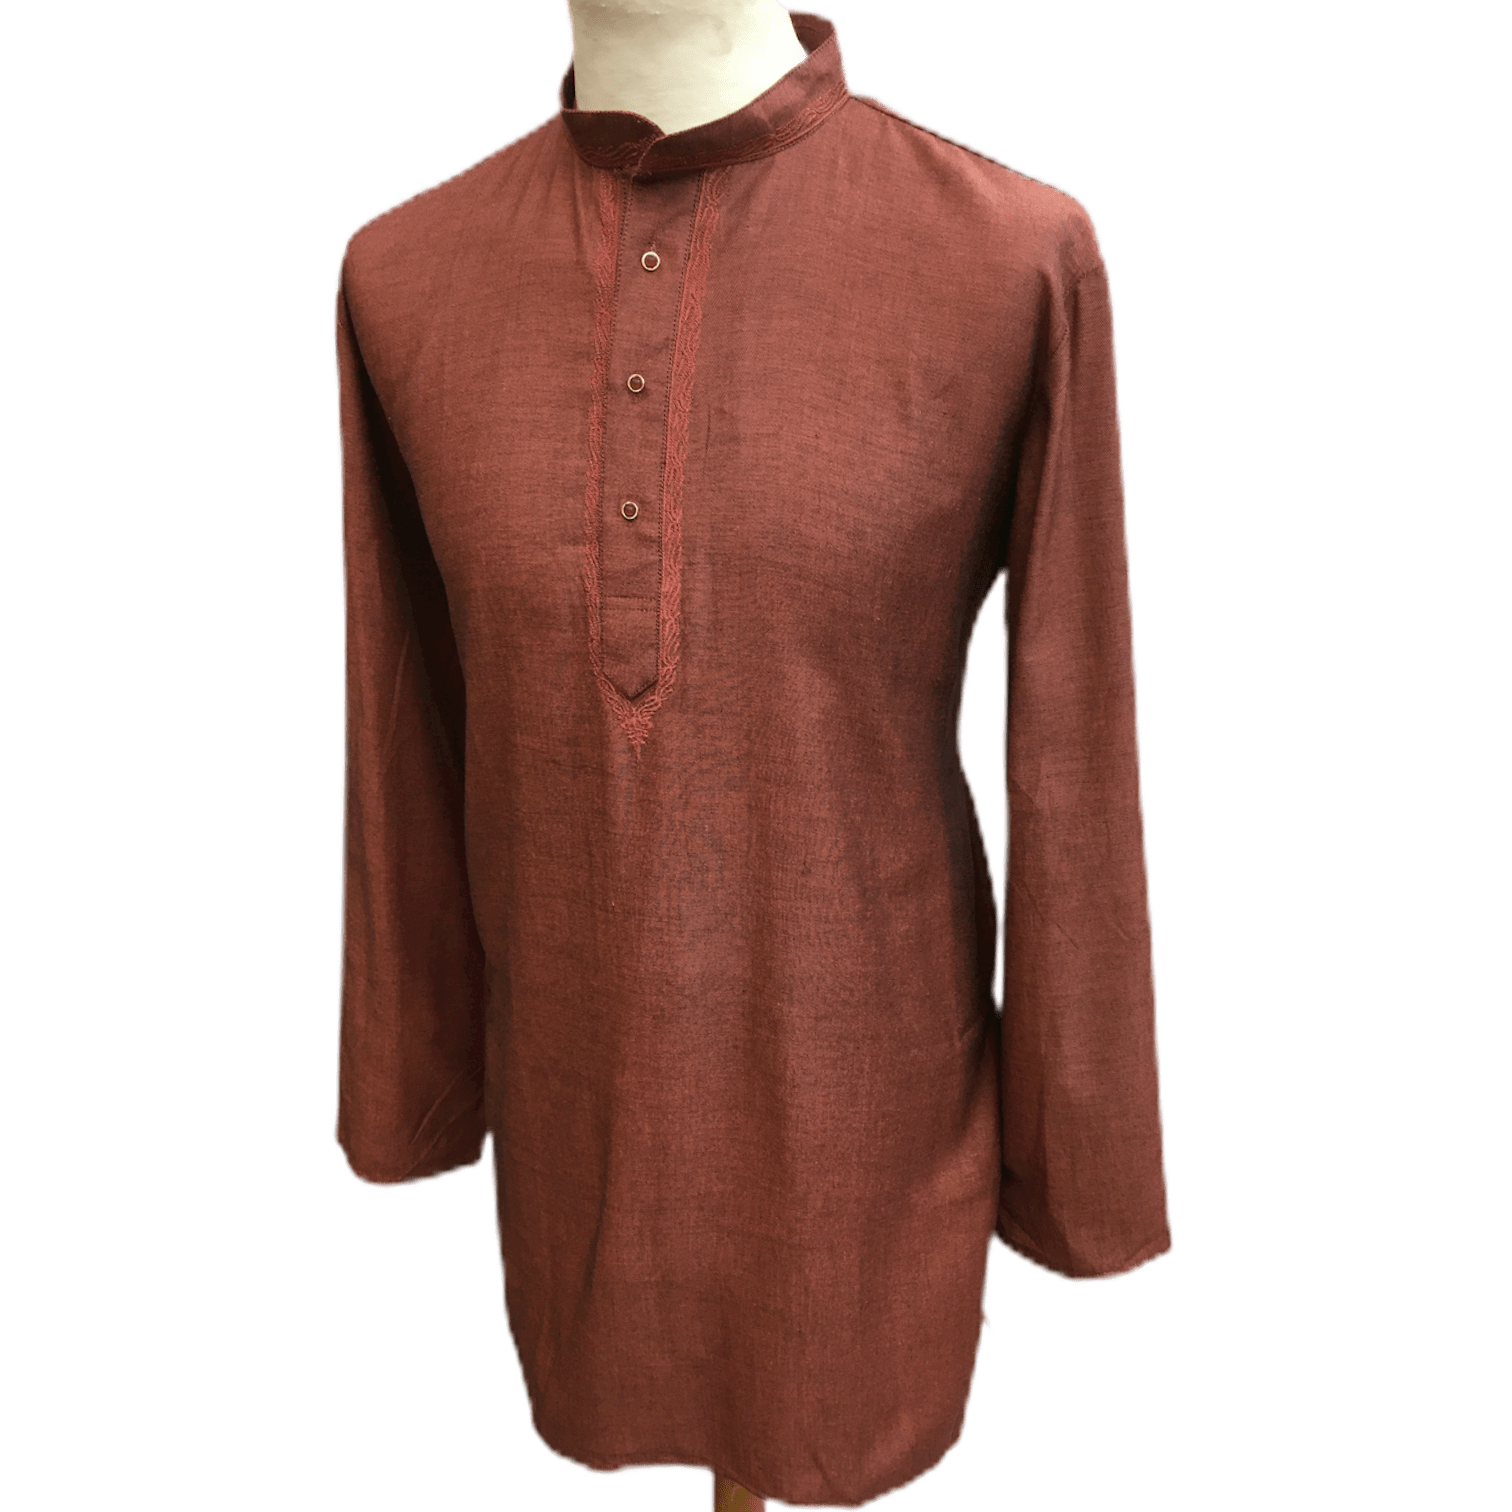 Mens Indian Dhoti Kurta Top in Peanut Pink, Thigh Length, for weddings, Bollywood Party  - Corsa Cp1219 - Prachy Creations